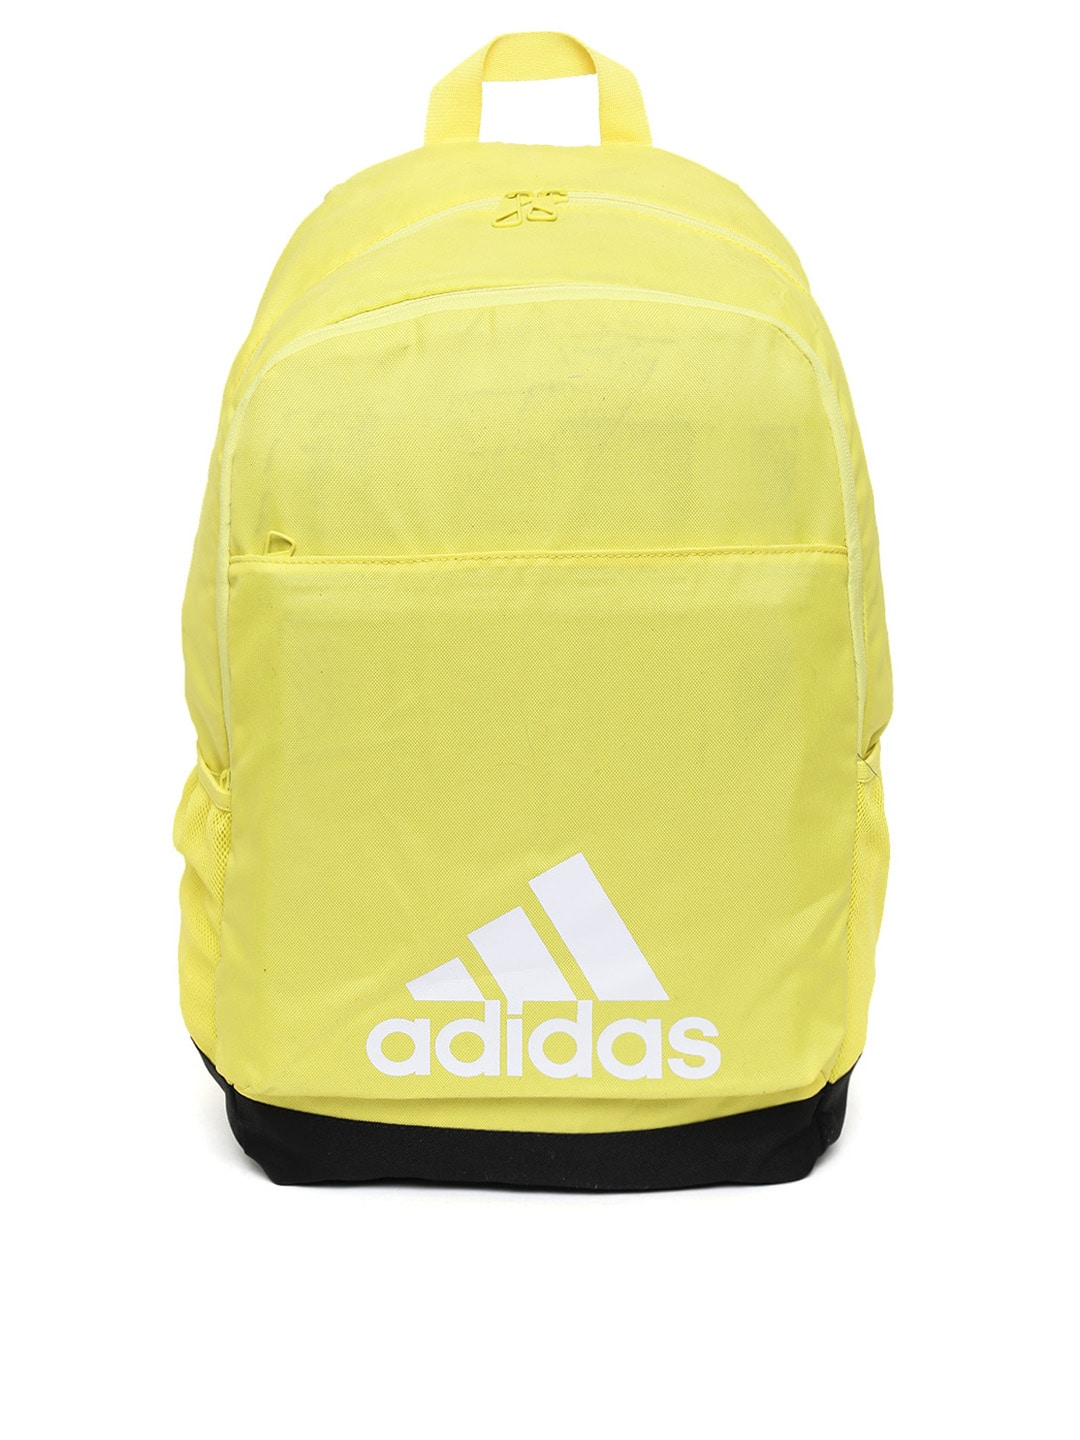 94622511736b Adidas Real Madrid Backpacks Cricket Balls - Buy Adidas Real Madrid  Backpacks Cricket Balls online in India